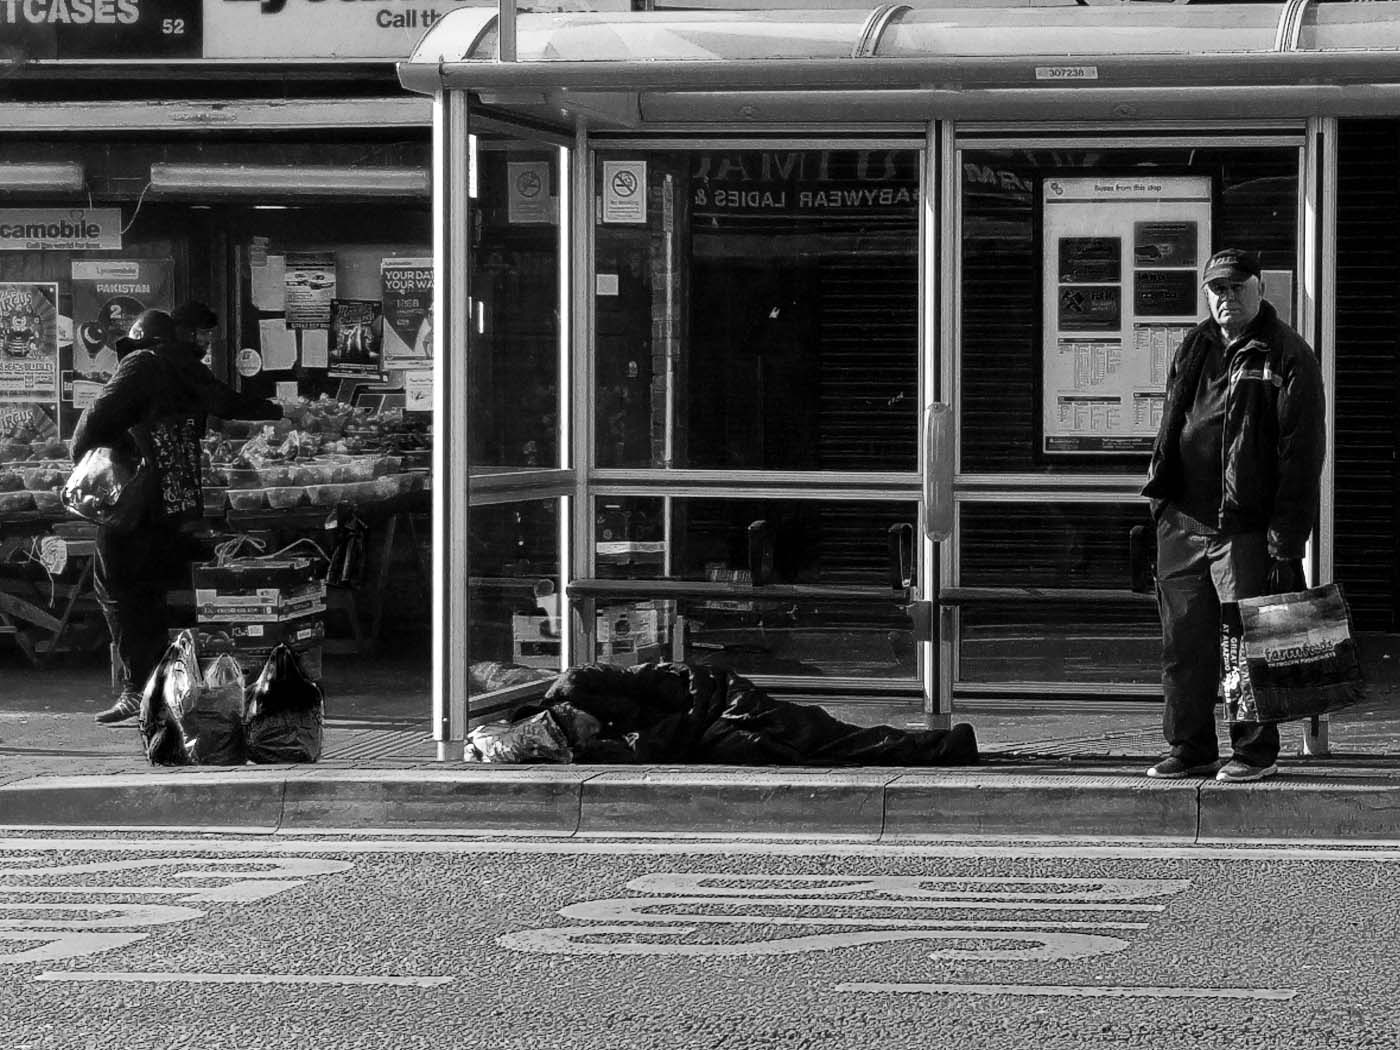 Sleeping Rough by meltography